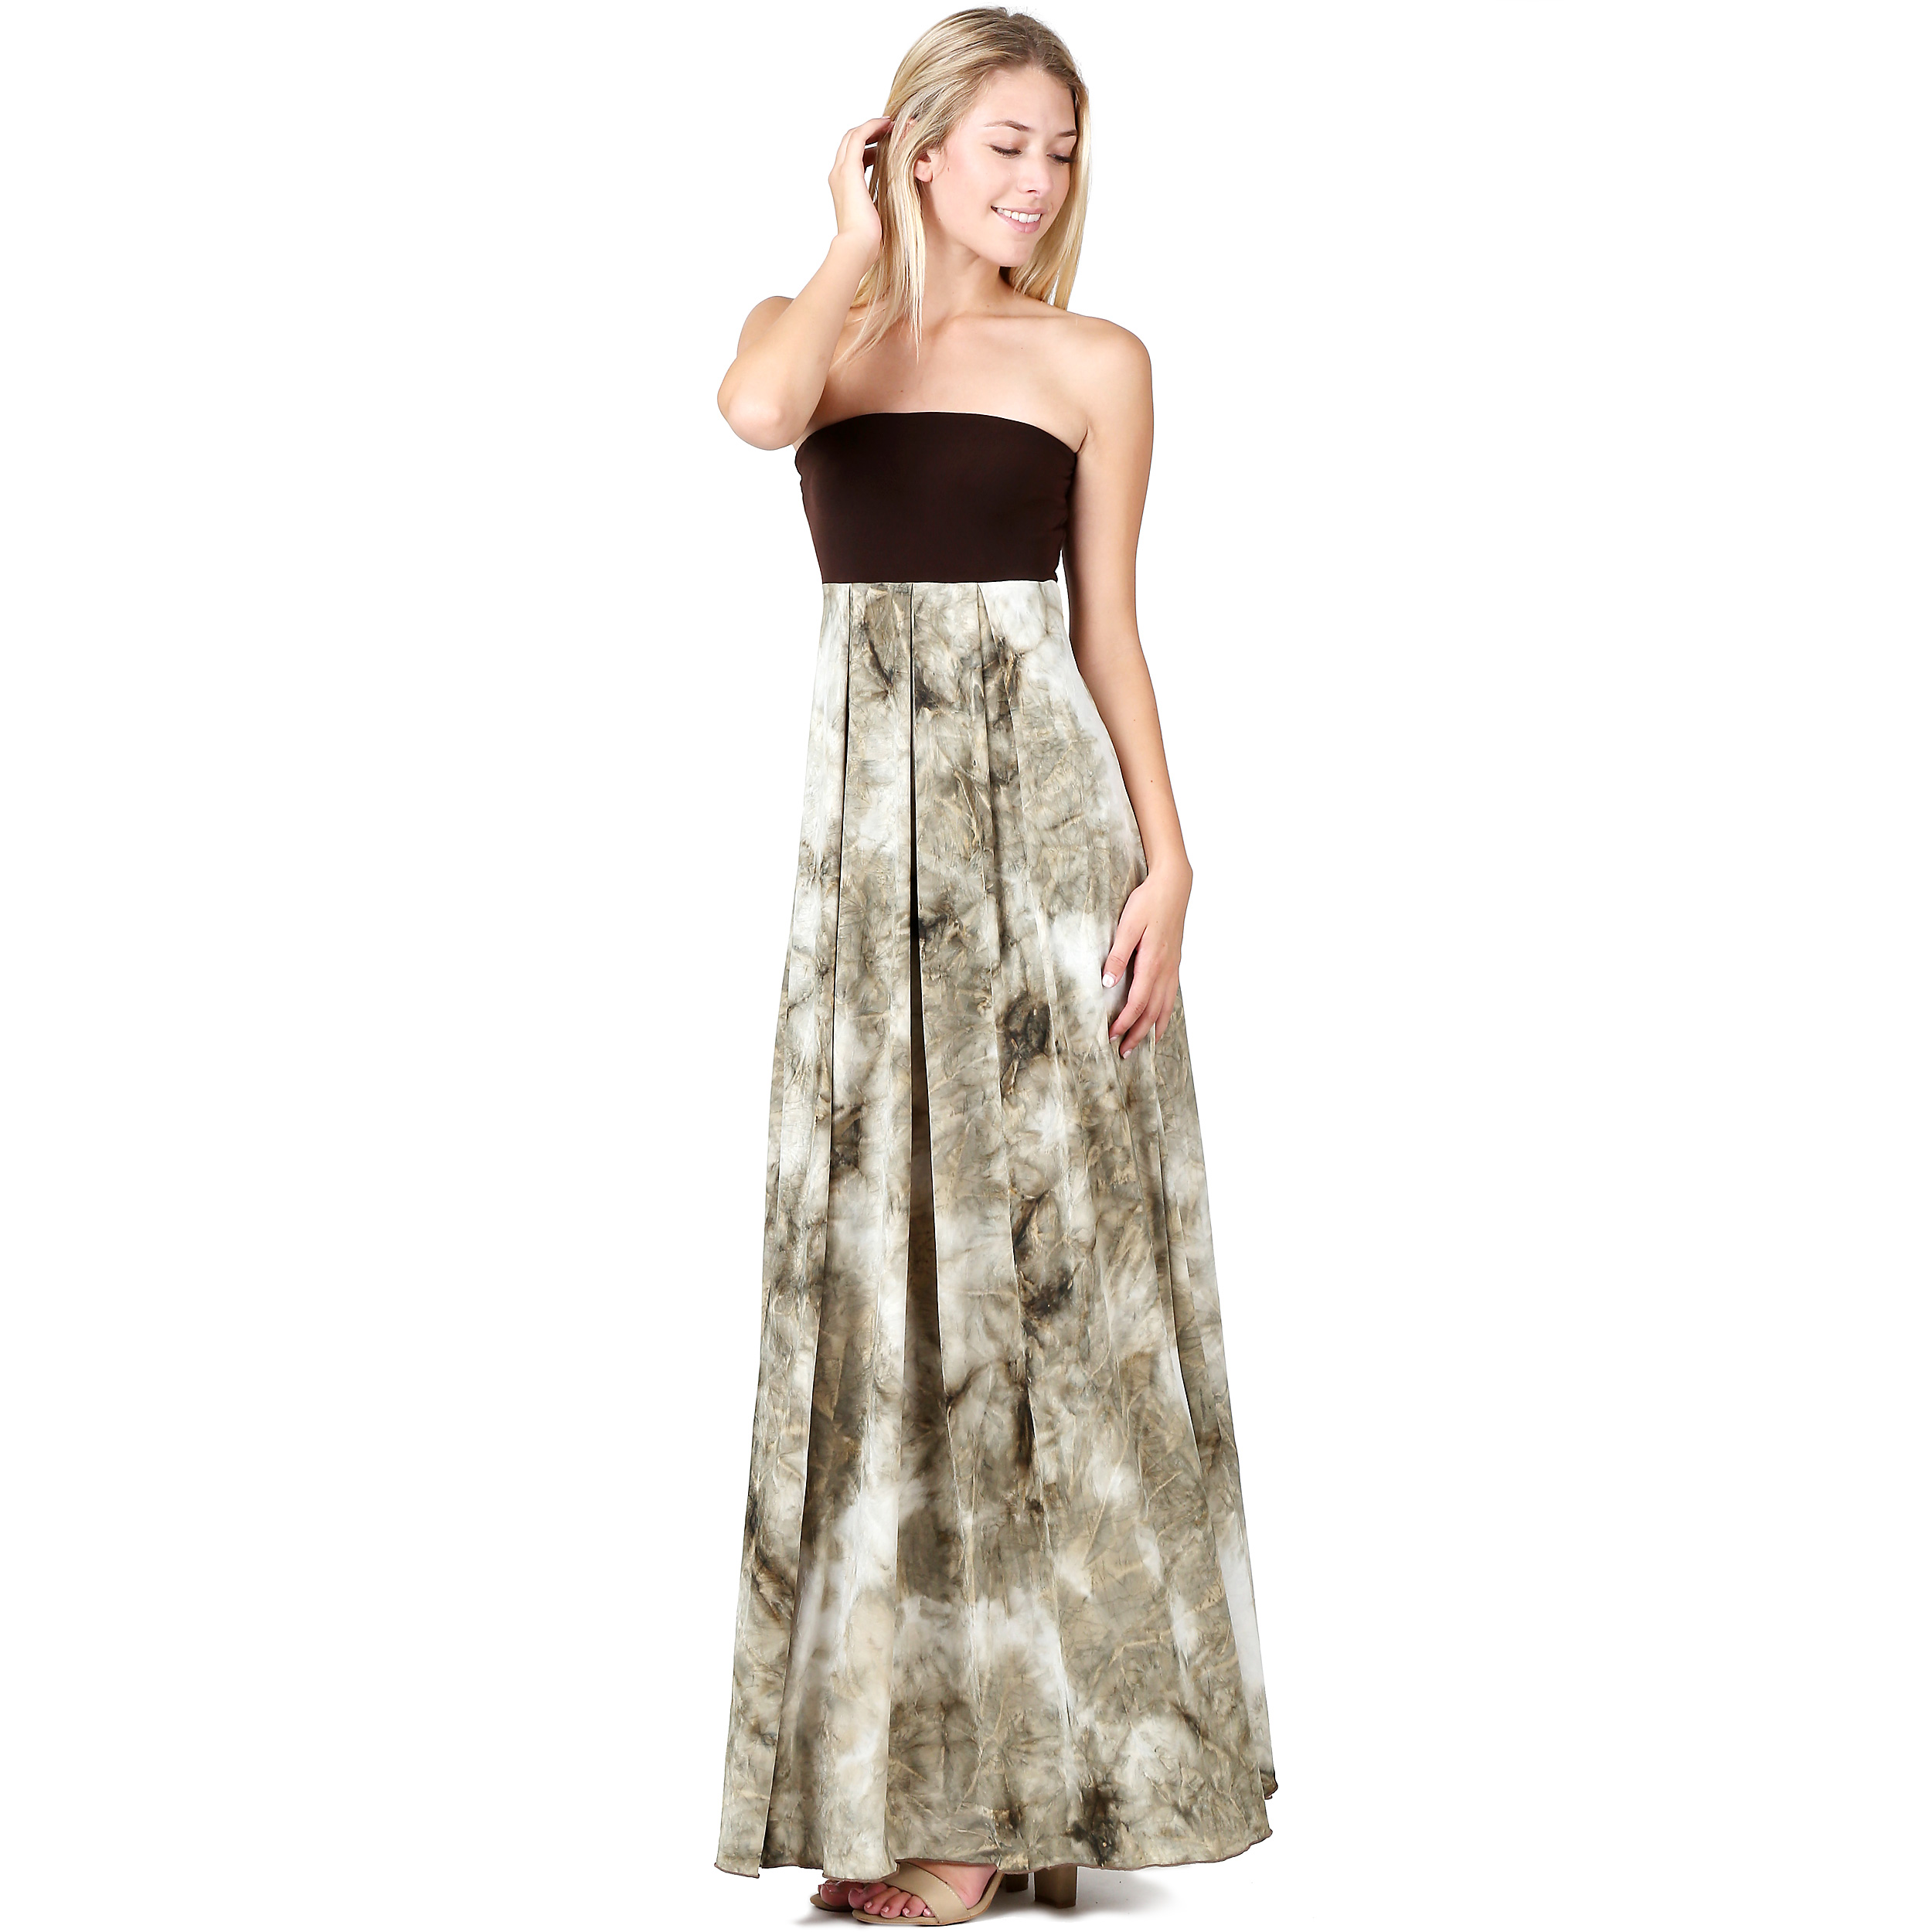 7d80d870b48 Evanese Women s Cocktail Strapless Tube Tie dye Print Maxi Long Dress is a sassy  addition to your closet. This long dress features contrast strapless tube  ...